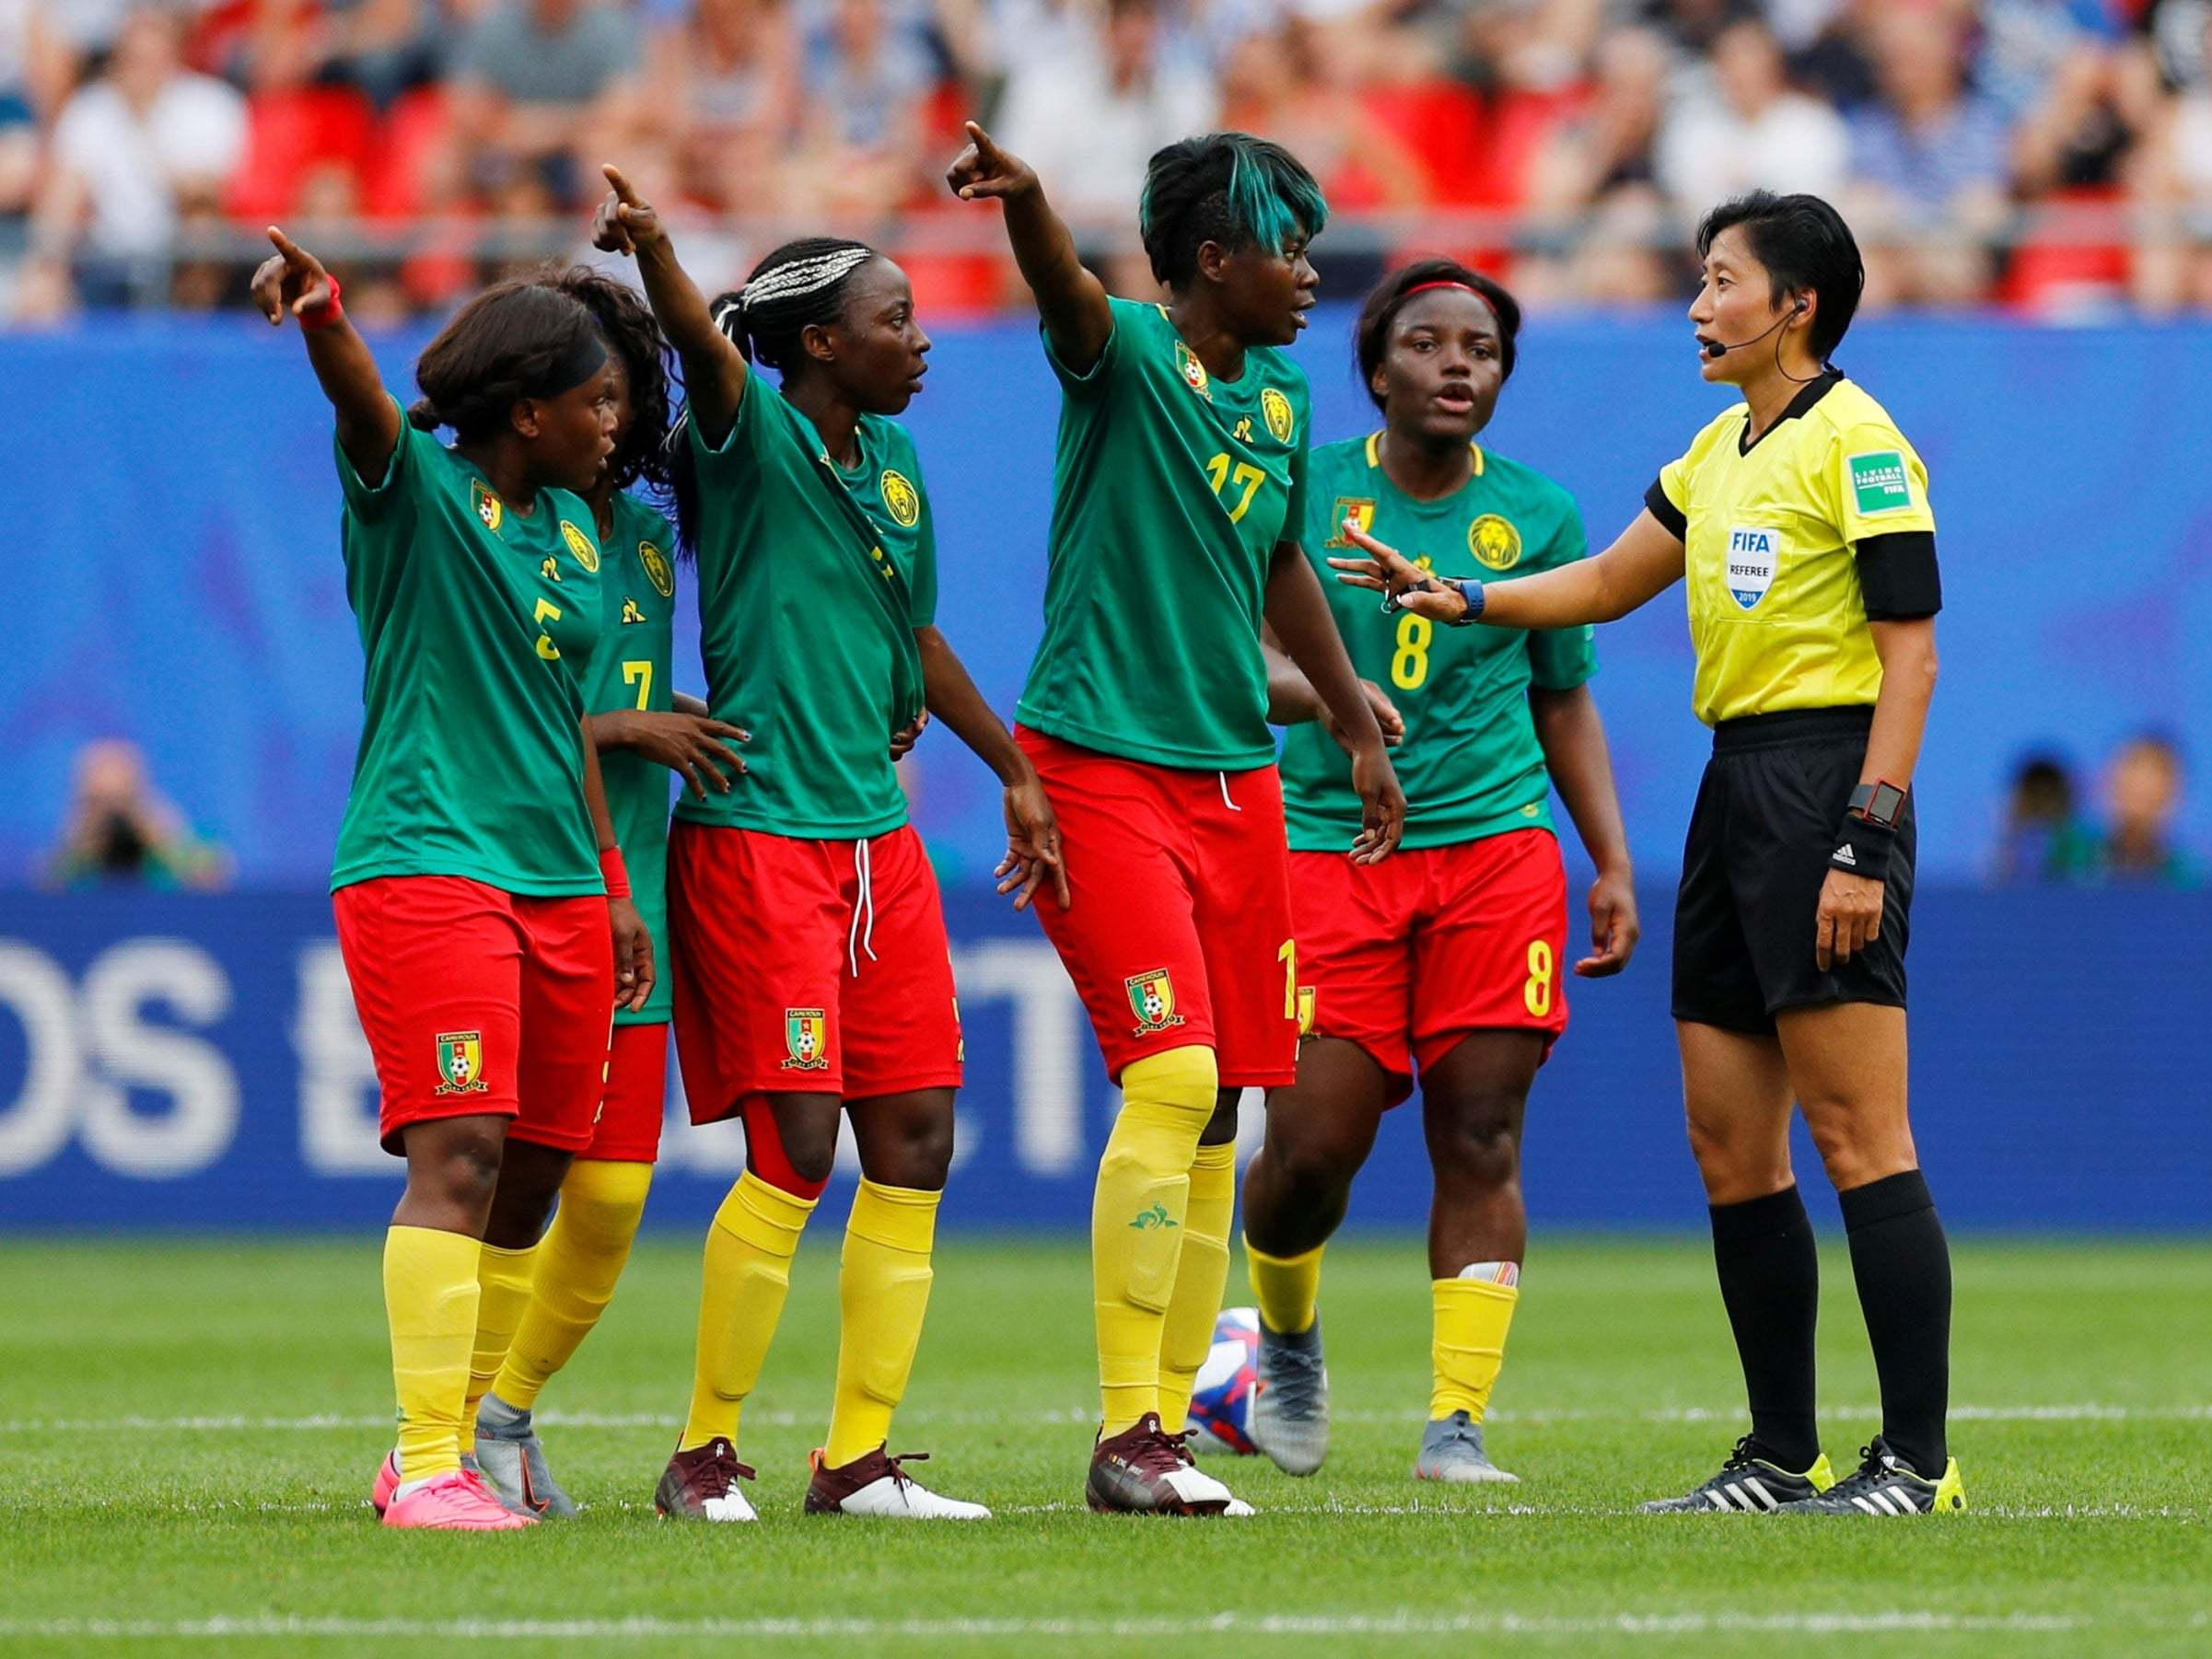 England vs Cameroon: VAR decisions see Women's World Cup last-16 match descend into chaos